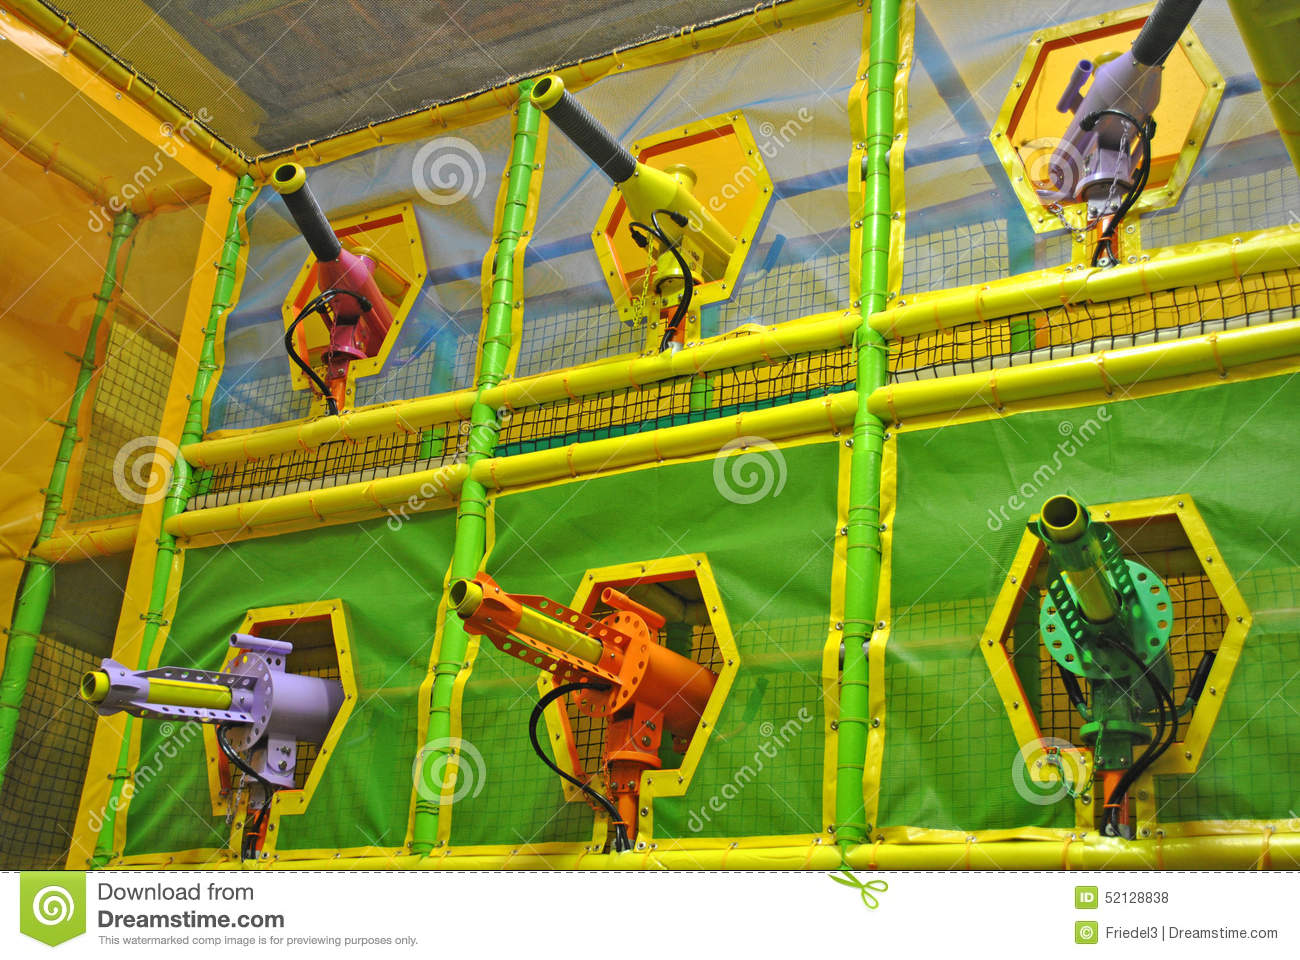 How to Start an Indoor Playground for Children